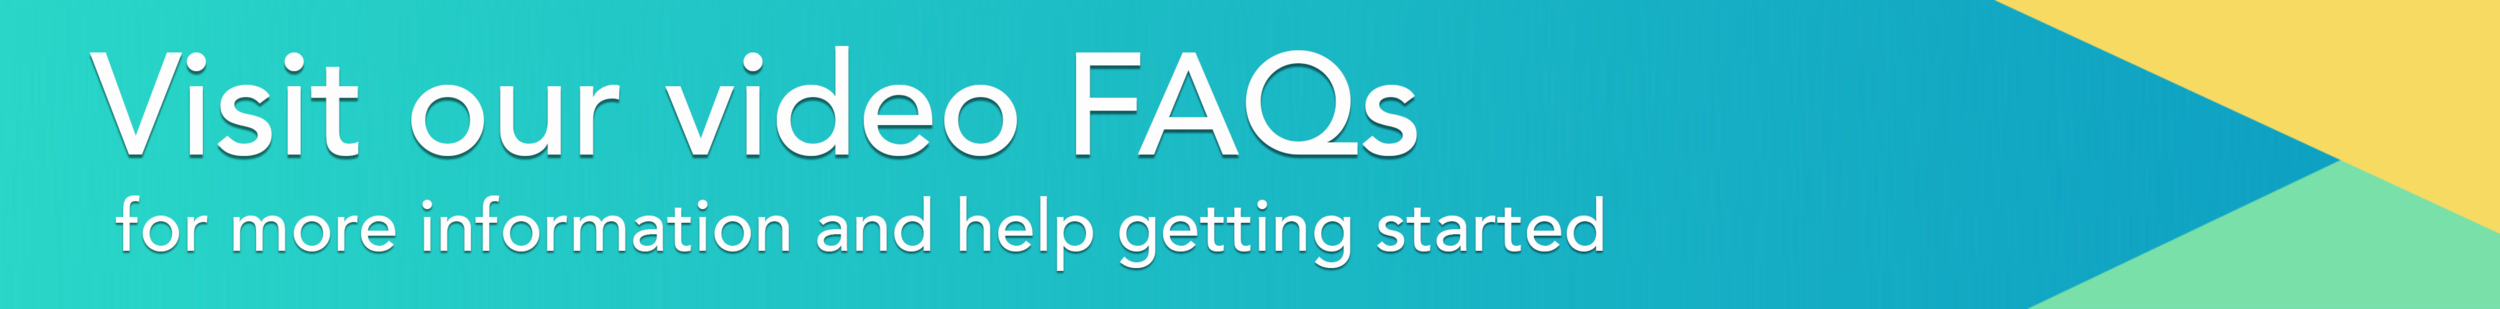 Visit our Video FAQs to explore quick answers to common questions.